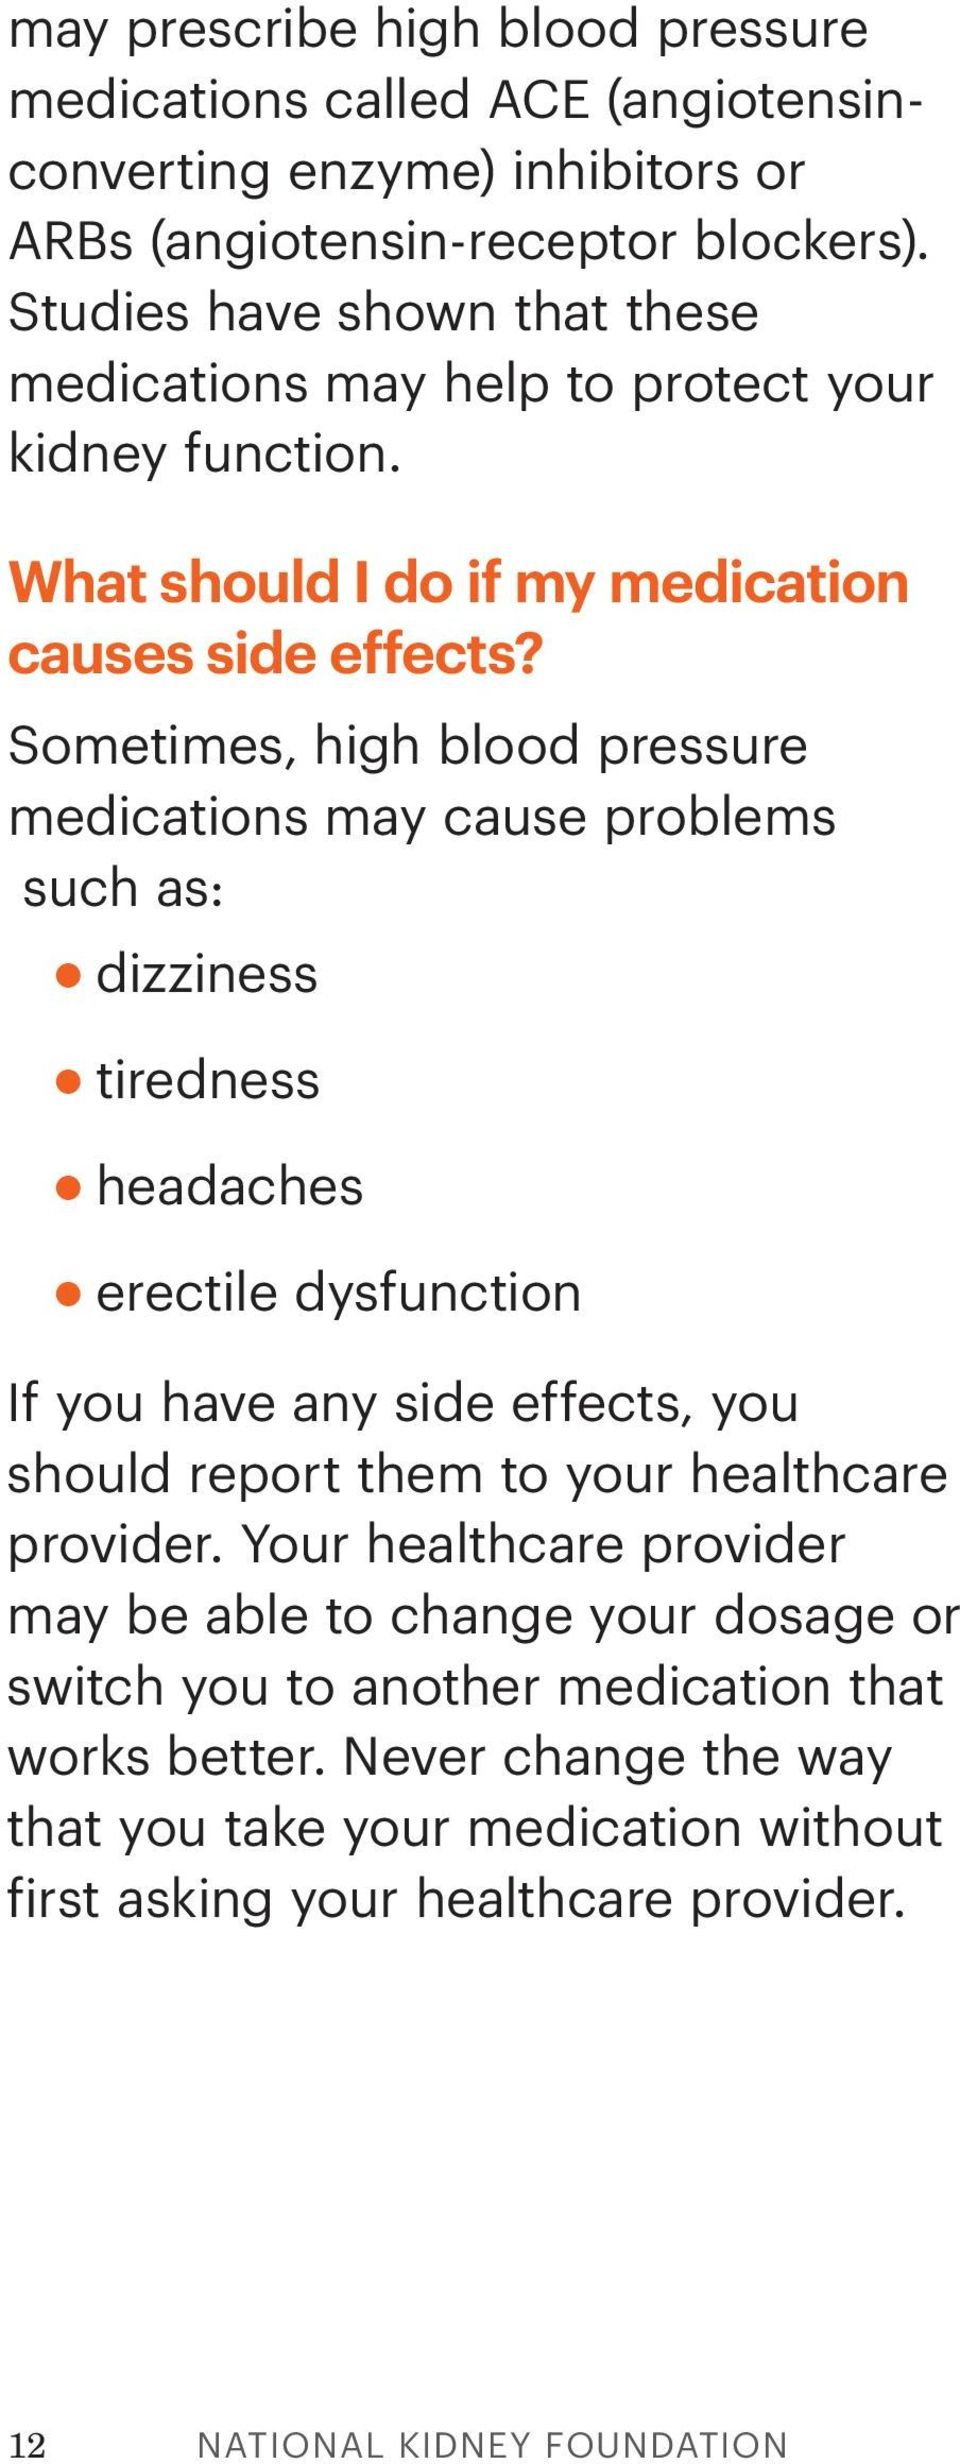 Sometimes, high blood pressure medications may cause problems such as: dizziness tiredness headaches erectile dysfunction If you have any side effects, you should report them to